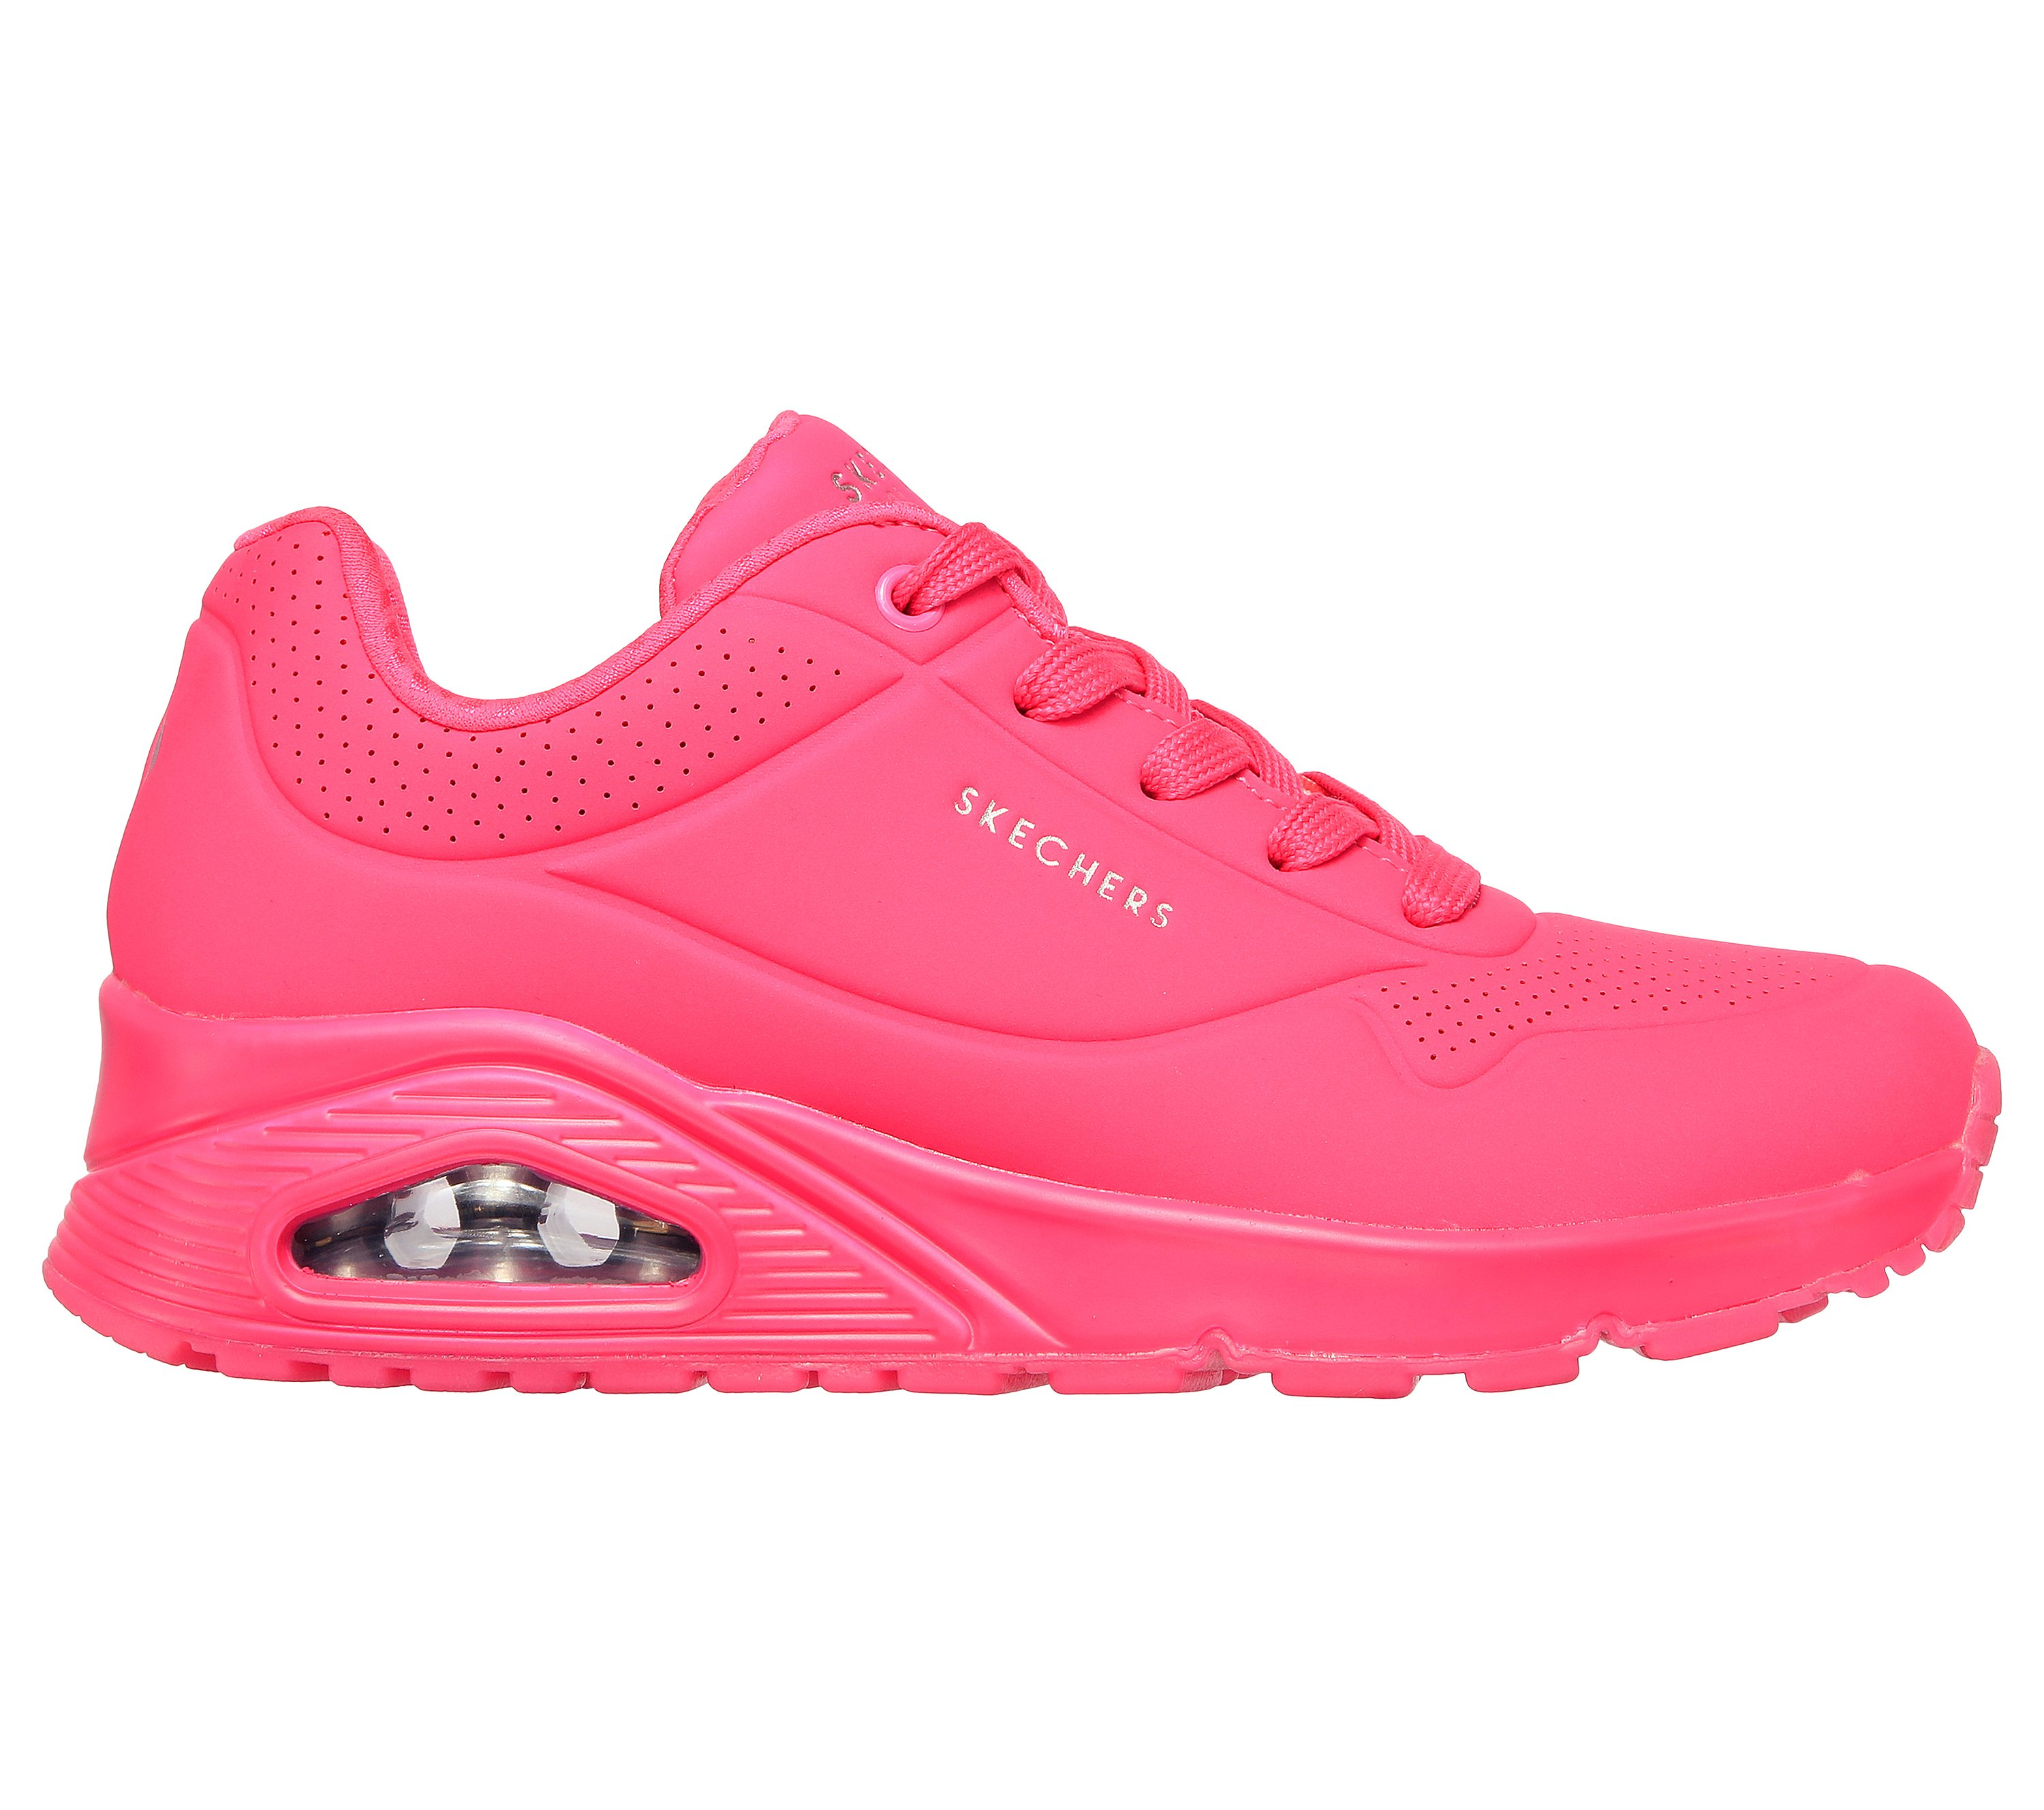 1 Brand New with Box Skechers Girl/'s Black 2 Neon Pink Shoes Size 11